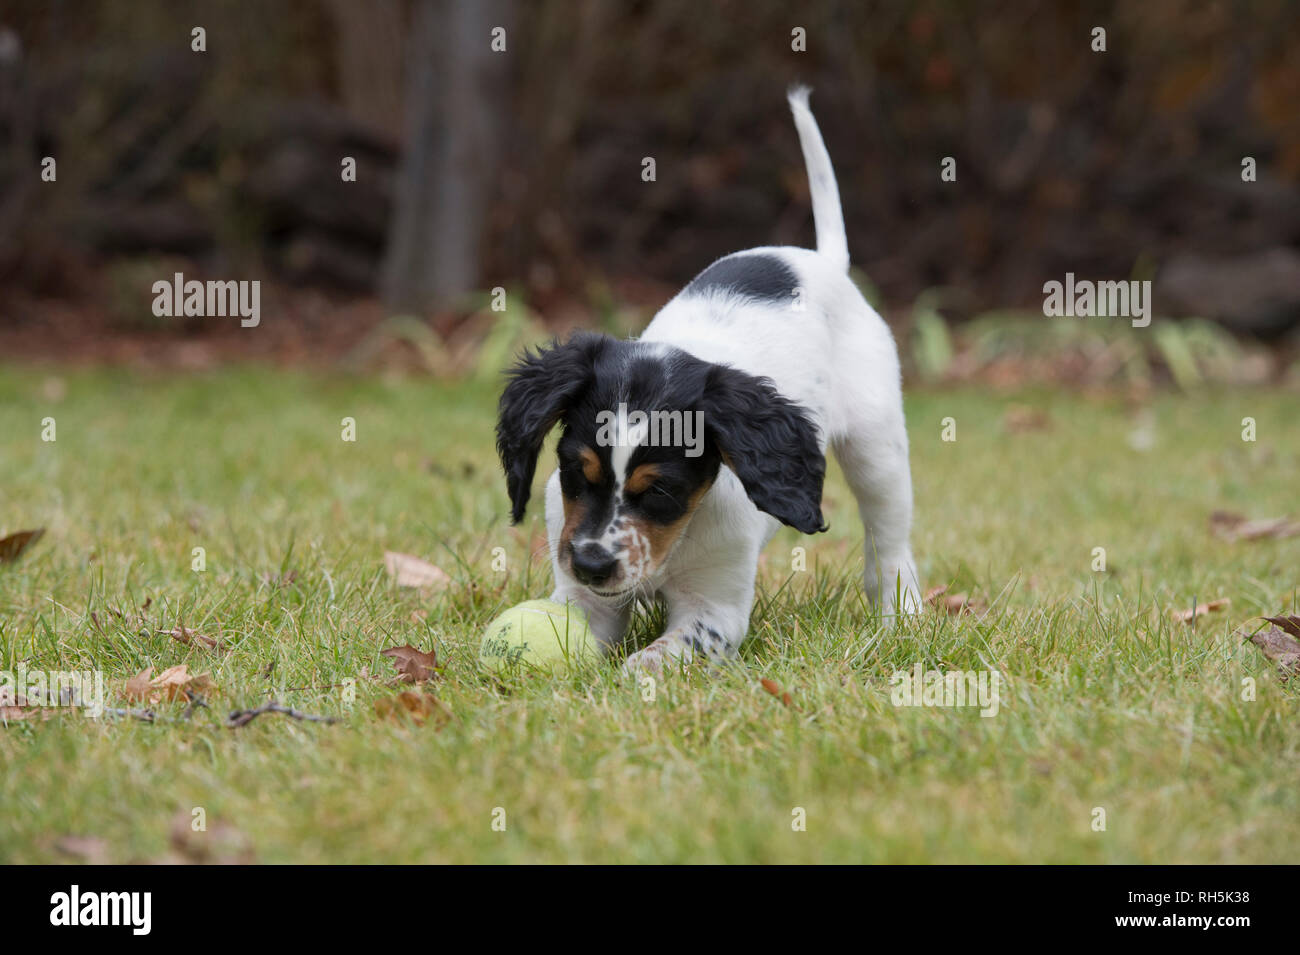 Eight-week-old English setter puppy playing with tennis ball - Stock Image